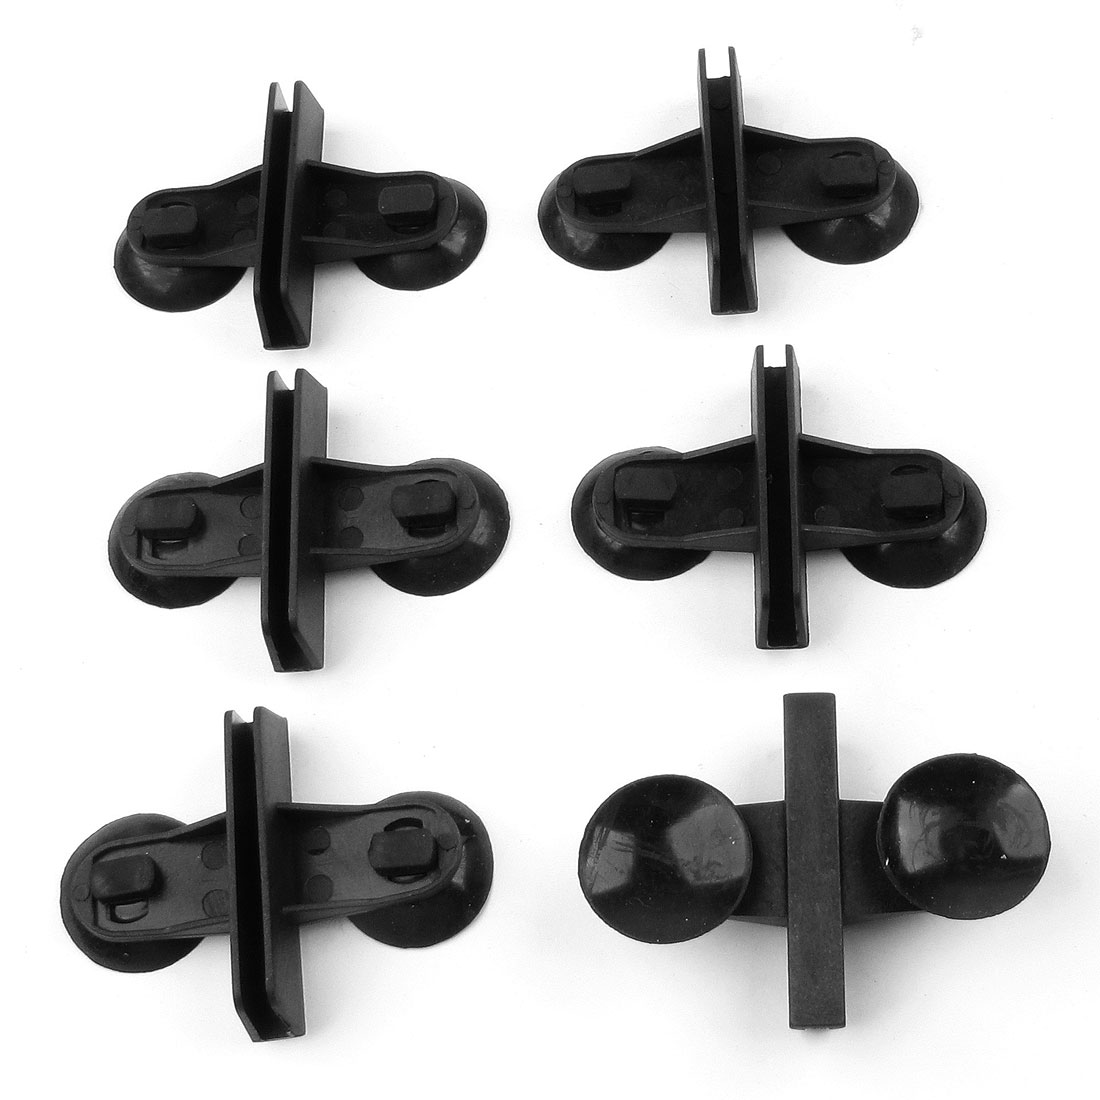 6 Pcs Black Plastic Aquarium Tank Suction Cup 60mm x 5mm Glass Clips